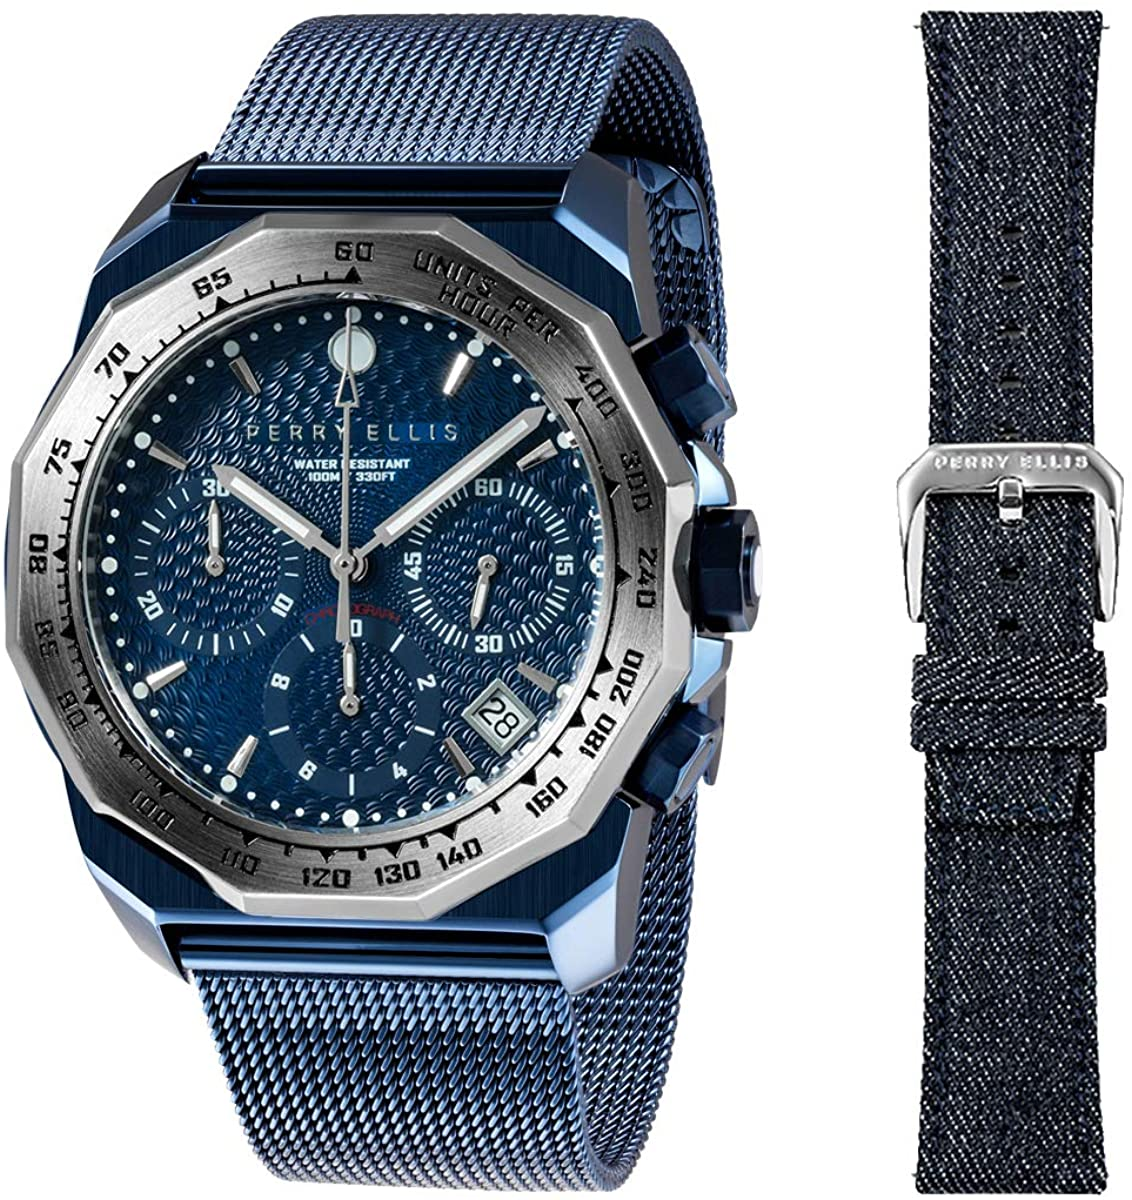 Perry Ellis Decagon GT Quartz Watch Waterproof with Stainless Steel Band Replacement Wool Fabric Stainless Steel Straps for Men and Women